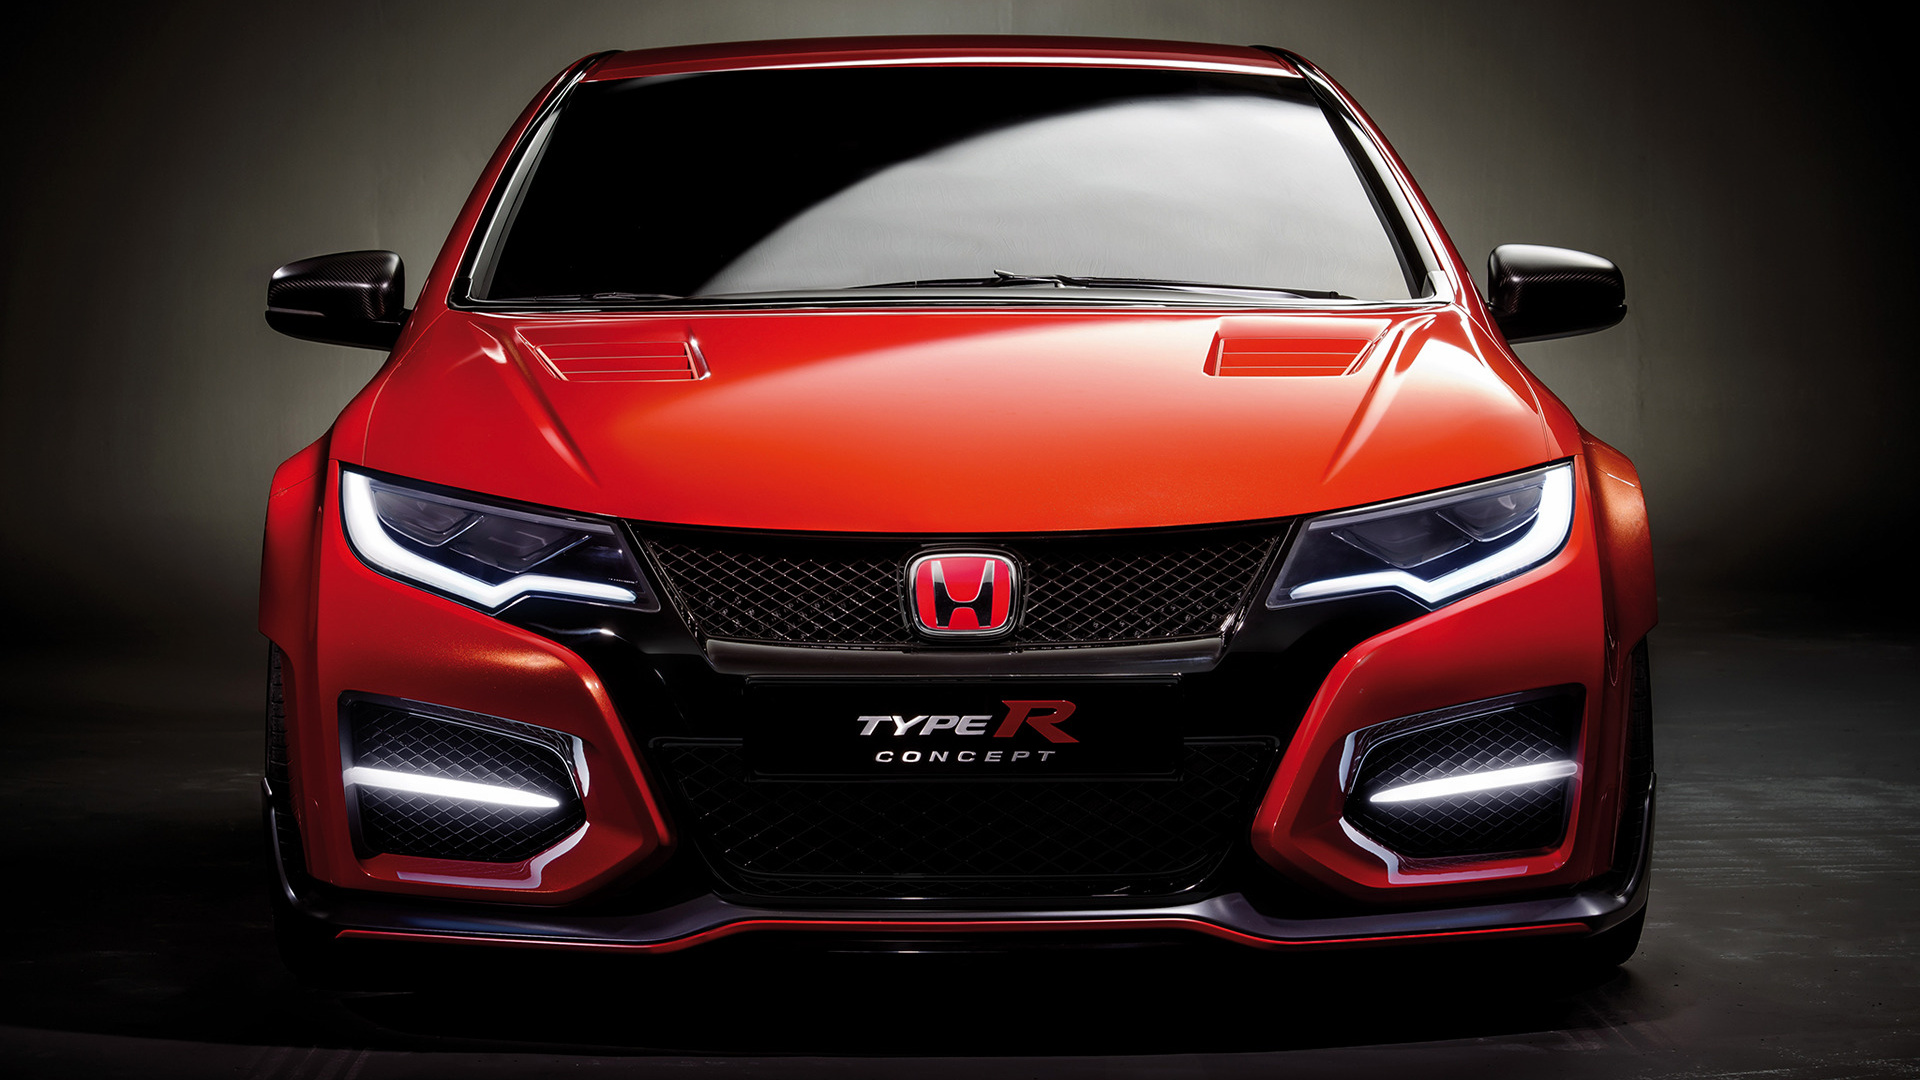 Honda Civic Type R Concept (2014) Wallpapers And HD Images